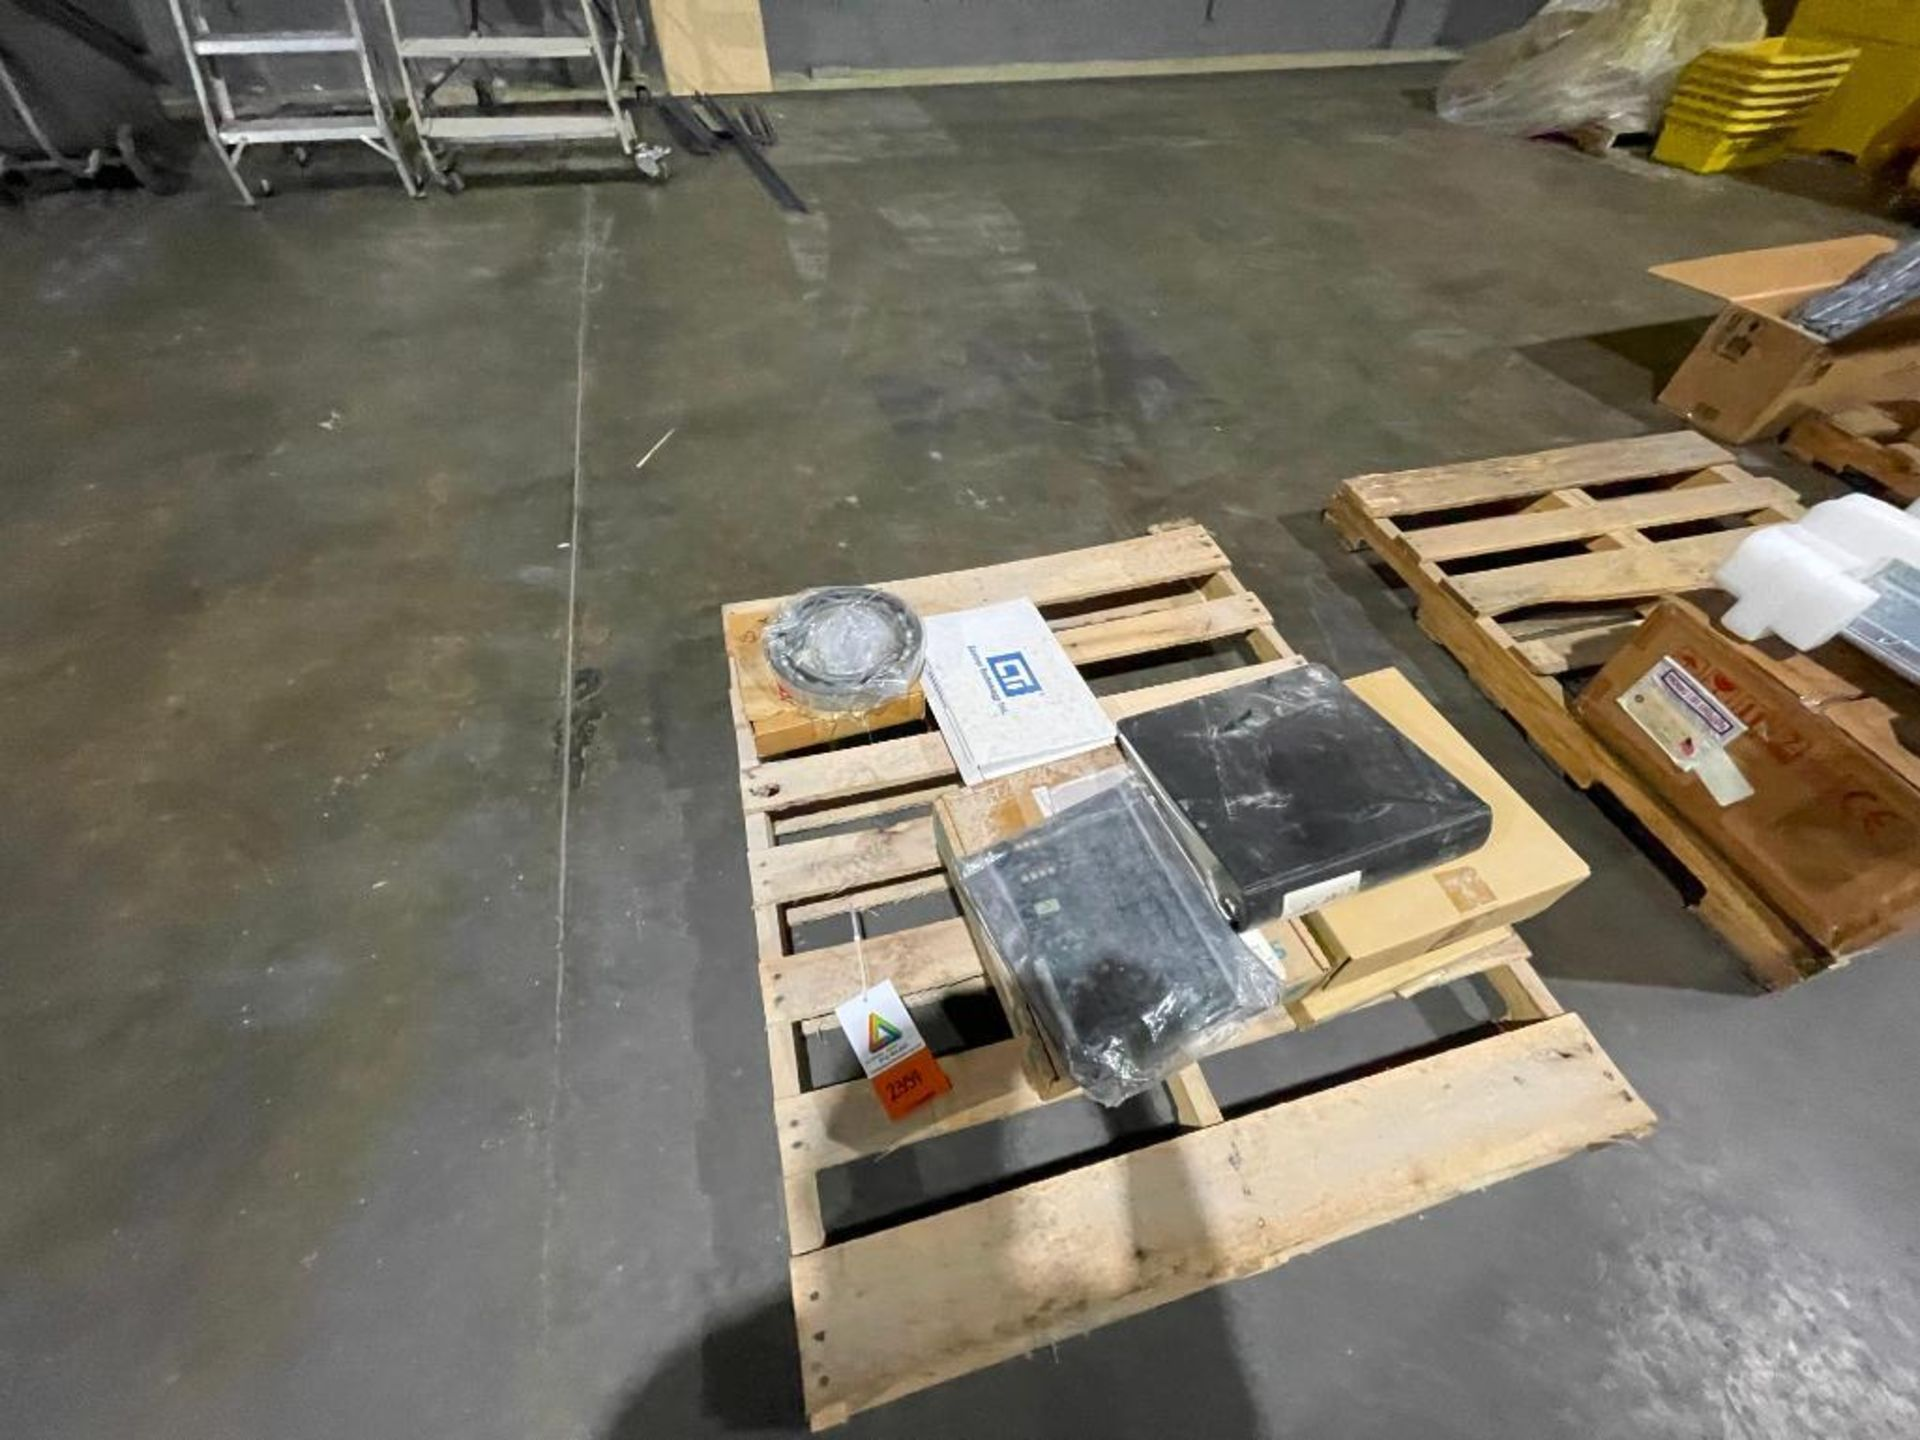 pallet of Siemens components - Image 2 of 5